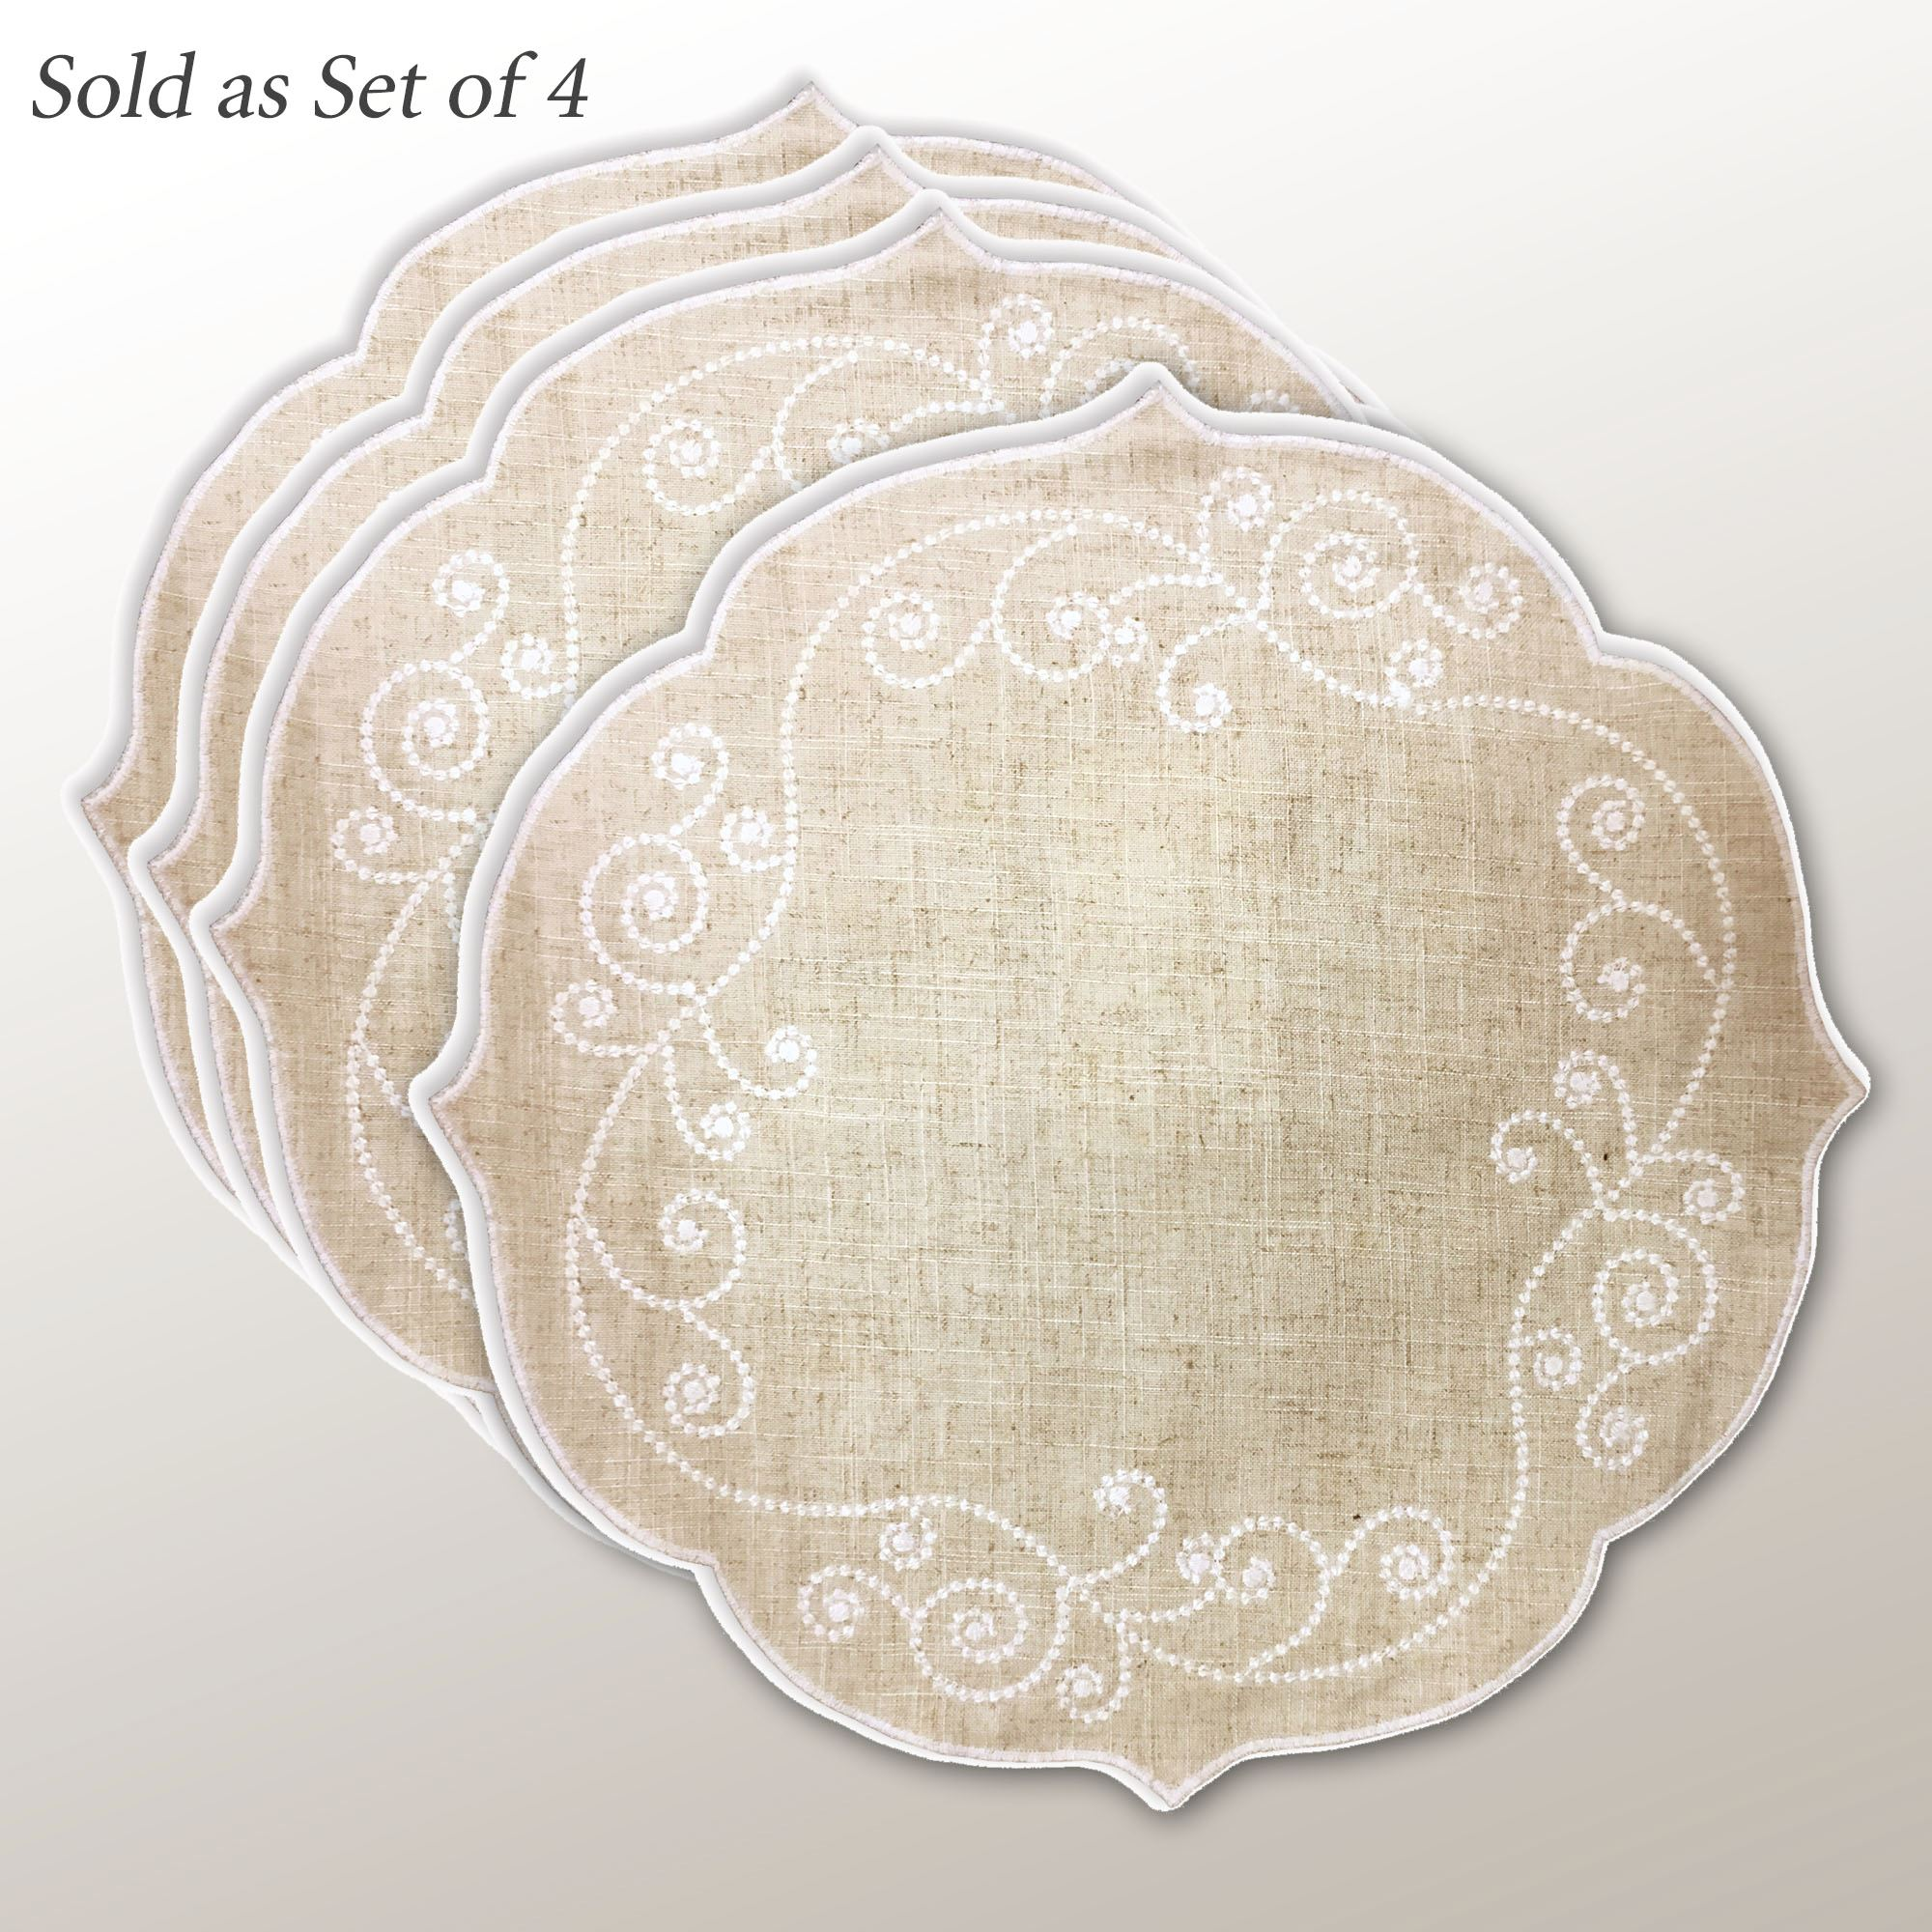 French Perle Embroidered Round Placemats Natural Set Of Four